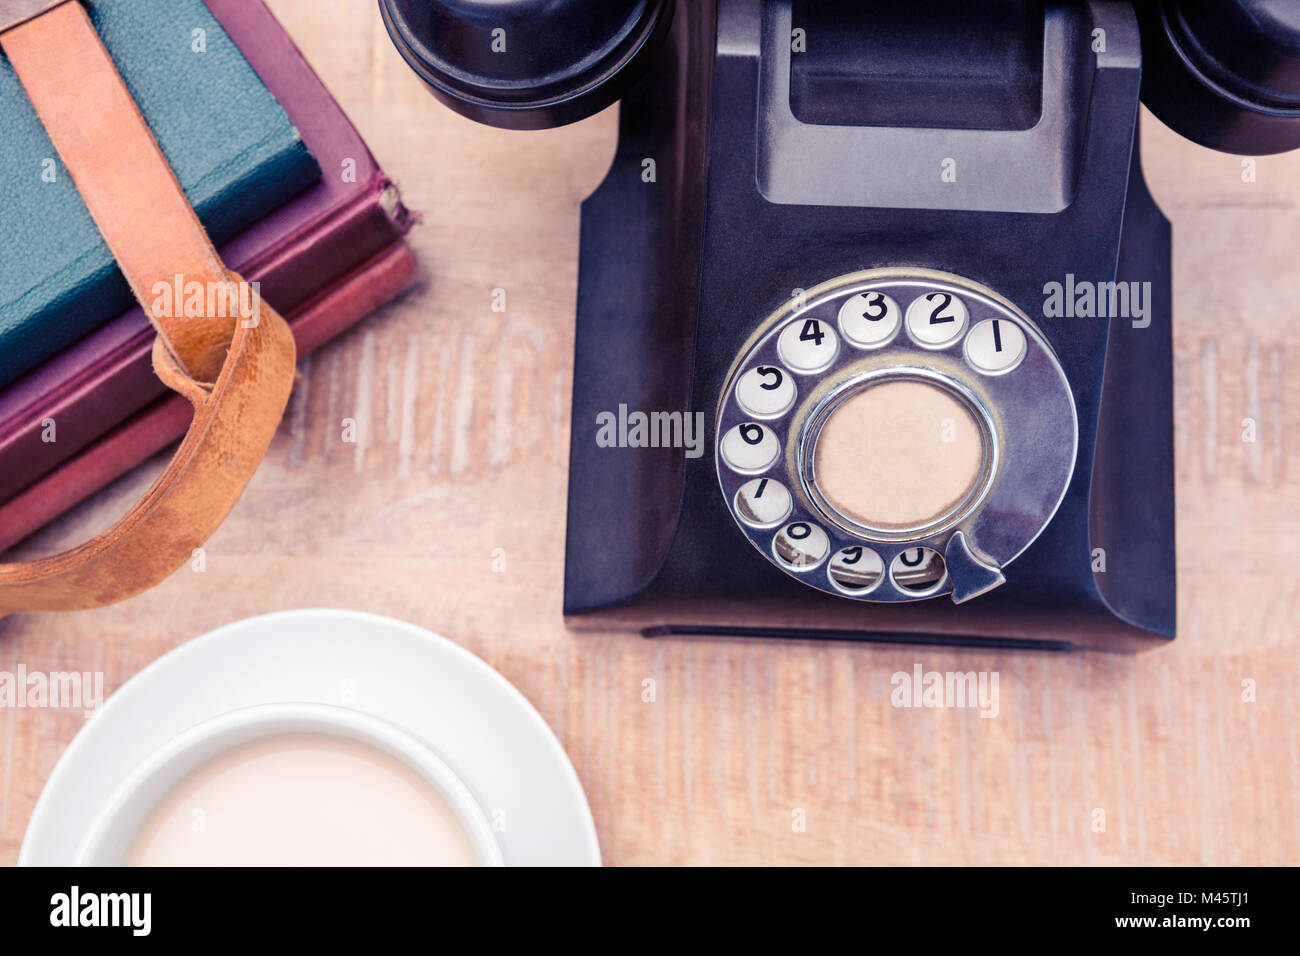 Old landline telephone with diaries and coffee - Stock Image